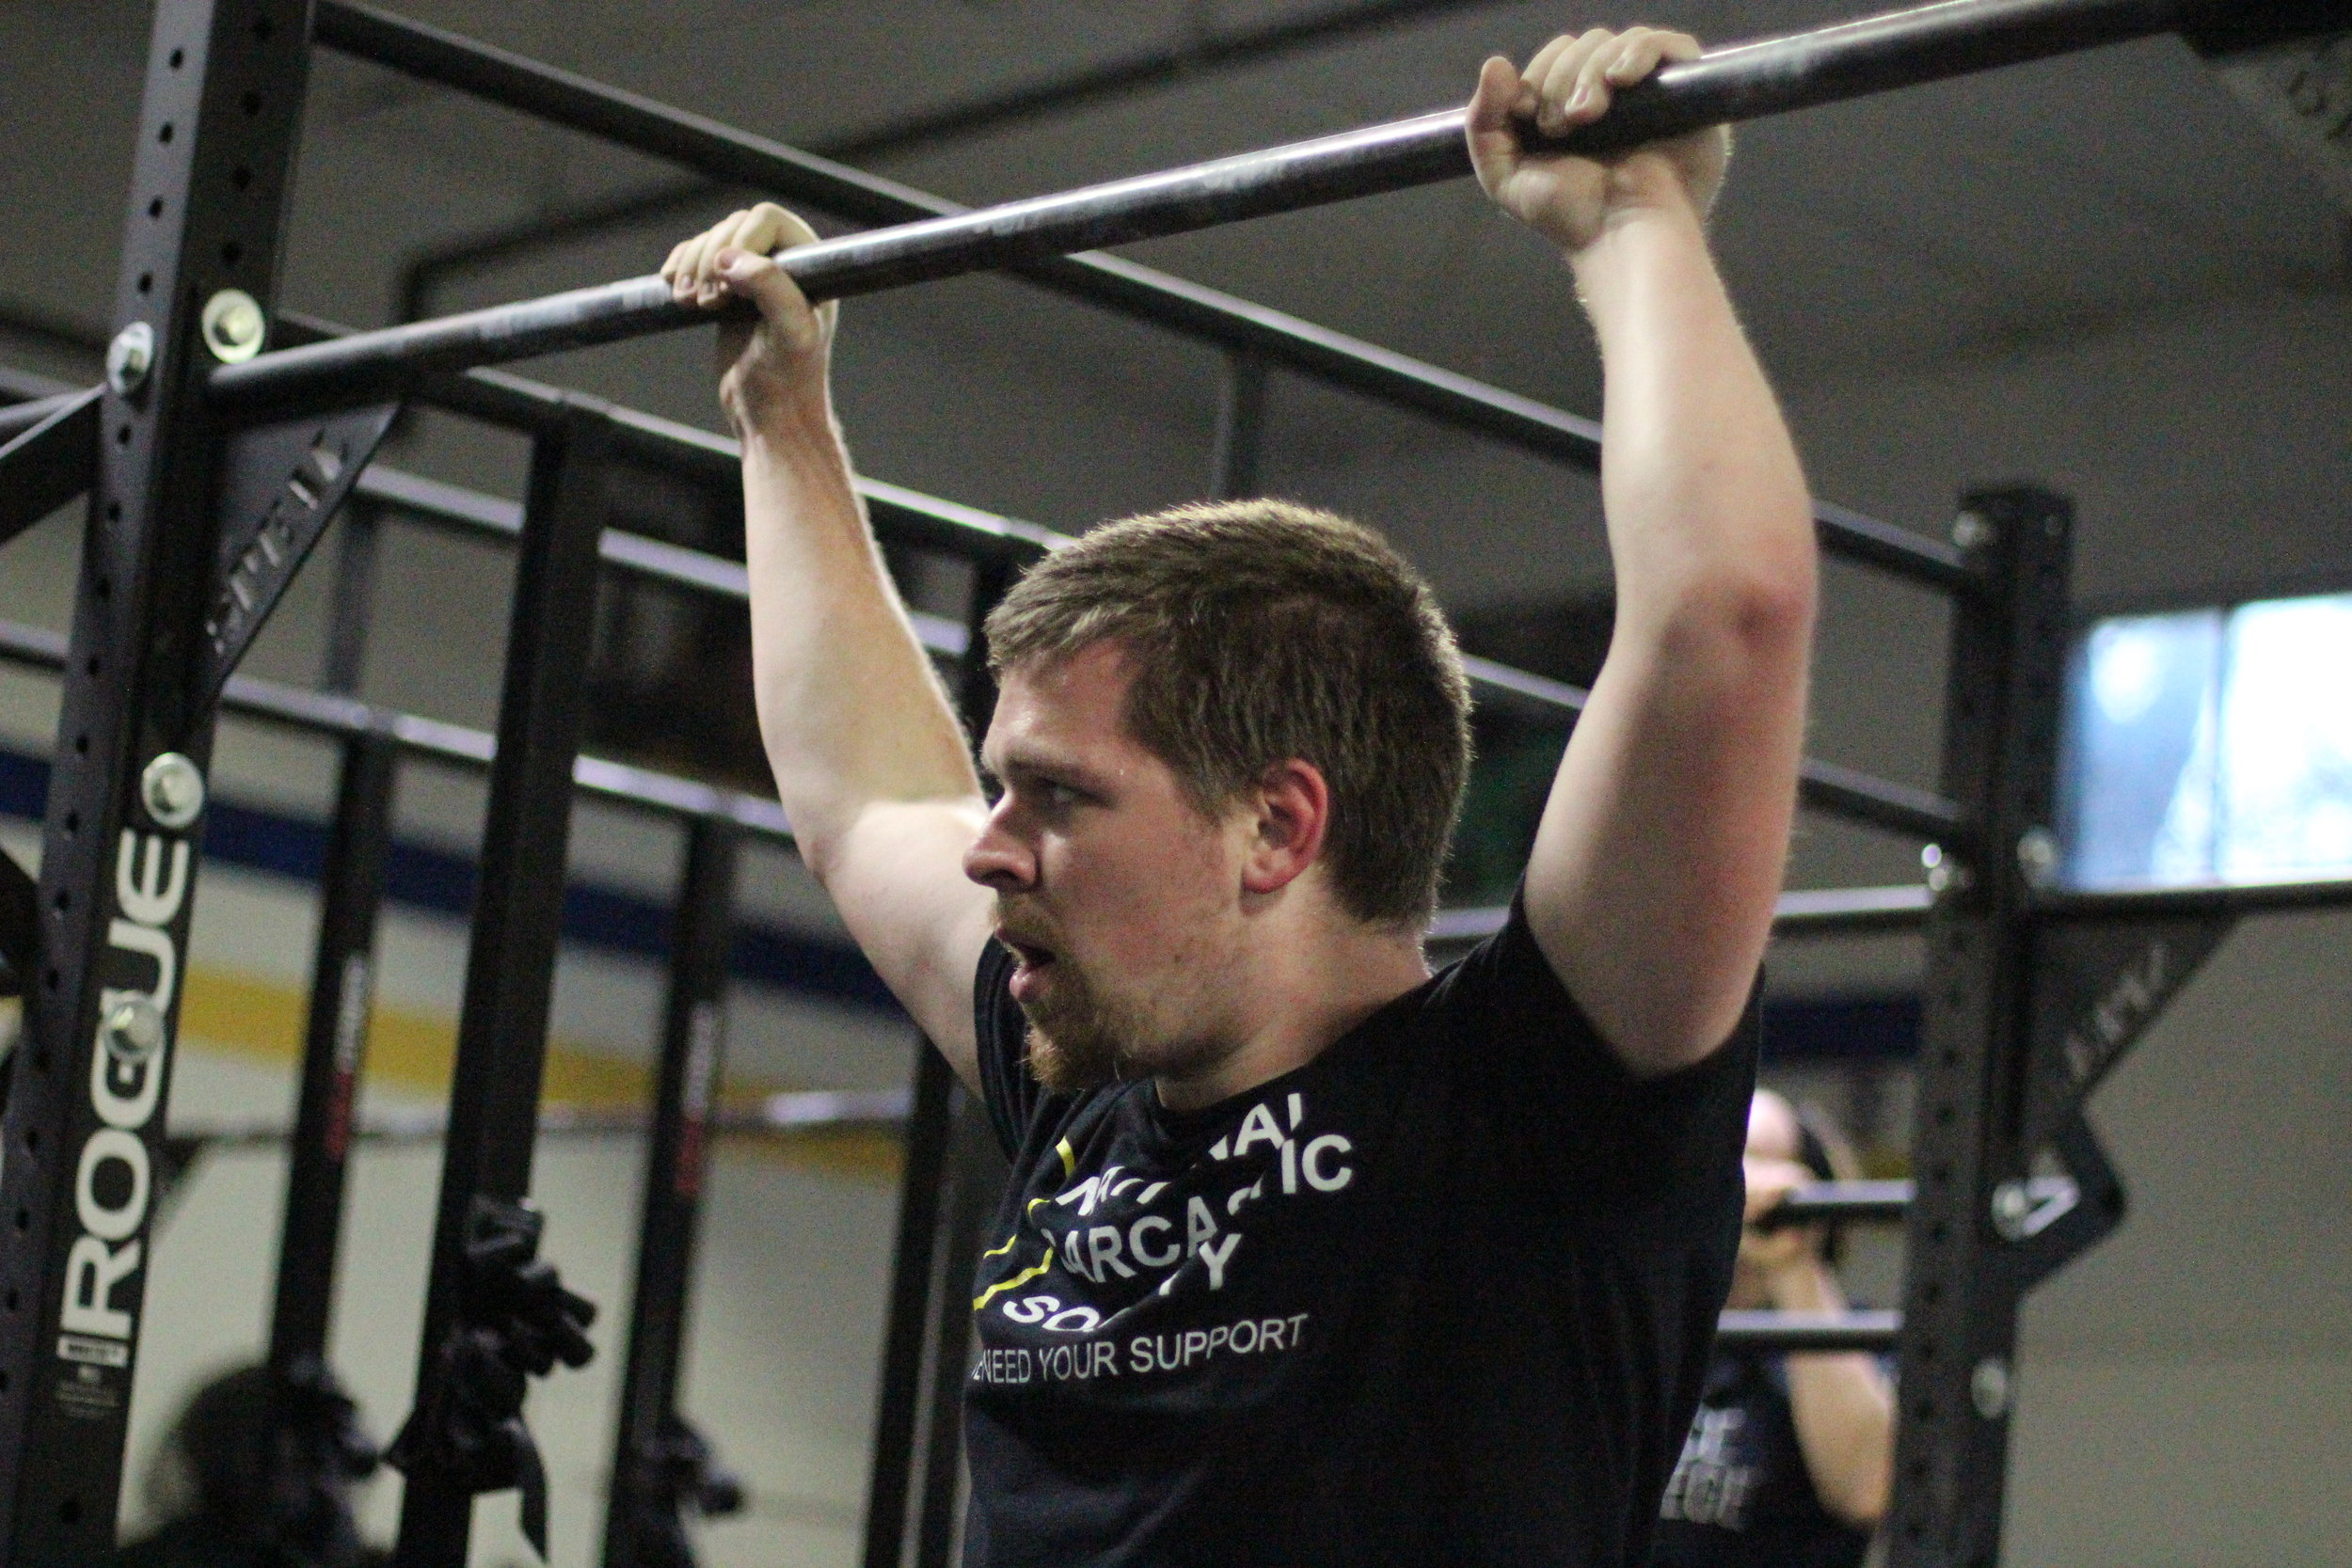 PVCF athlete,Nicholas Whitman checks out the clock during a set of pull ups.